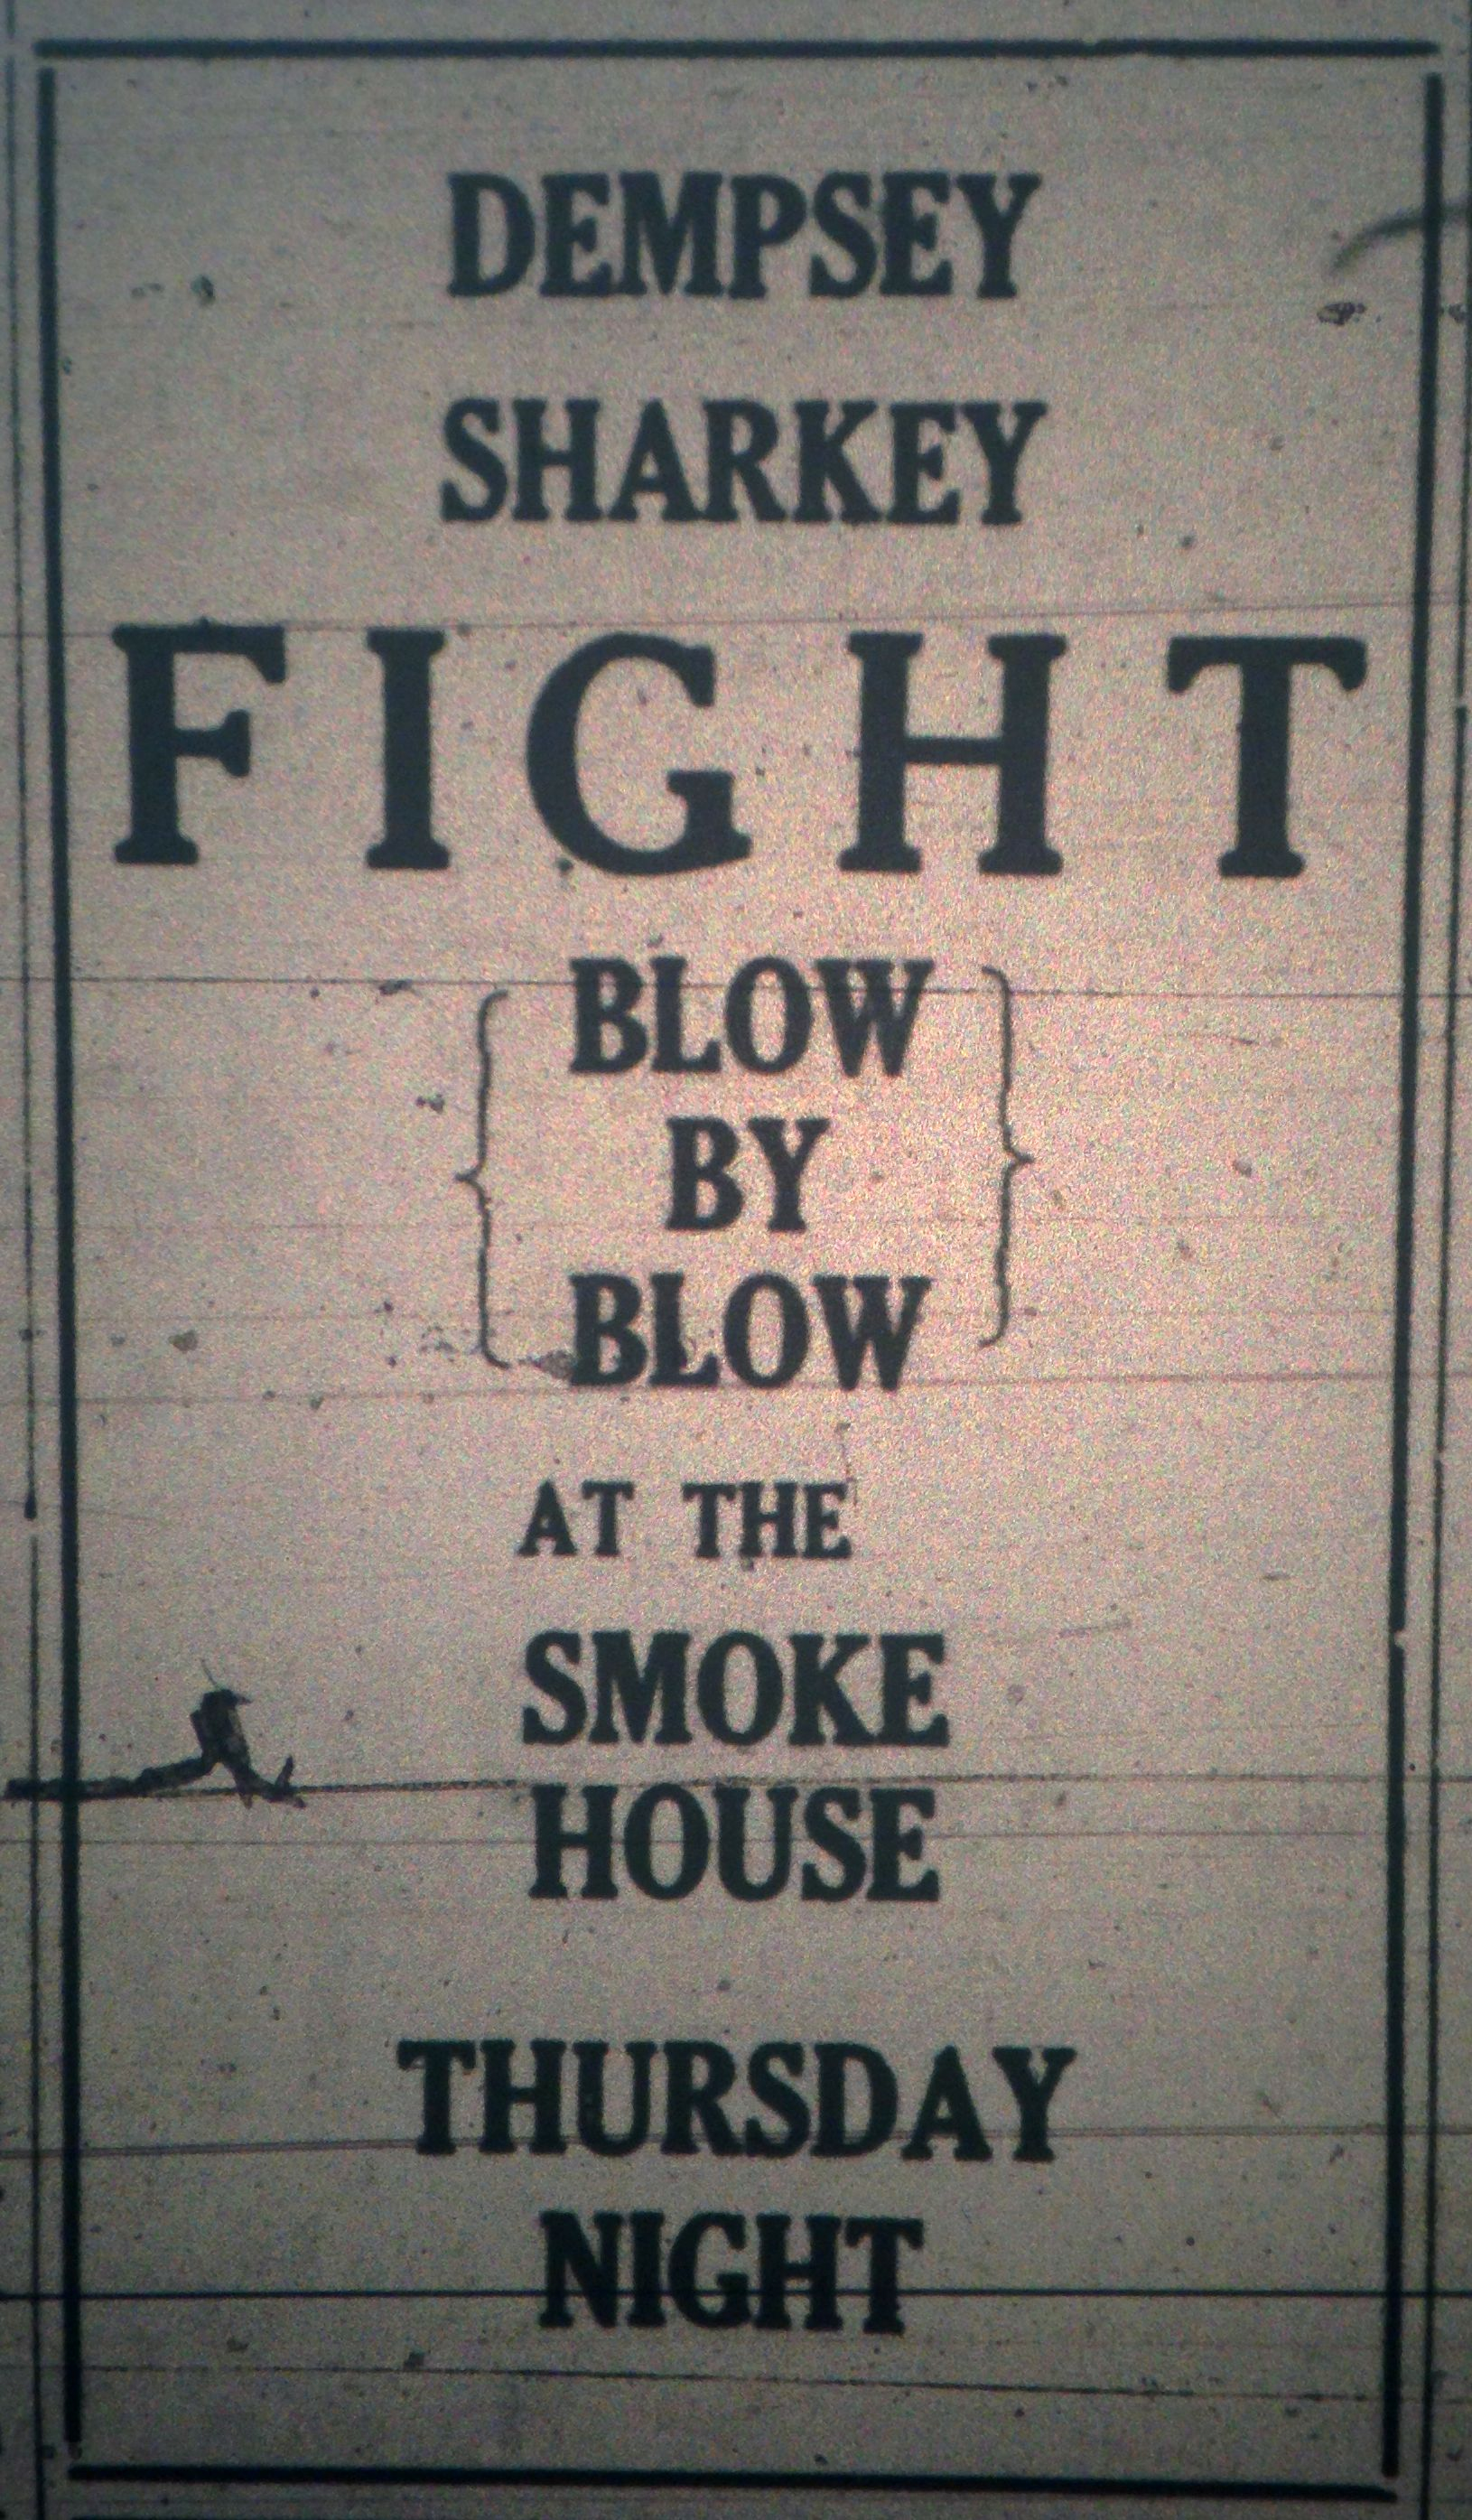 Dempsey-Sharkey Fight at the Smoke House Ad LB 07.19.1927